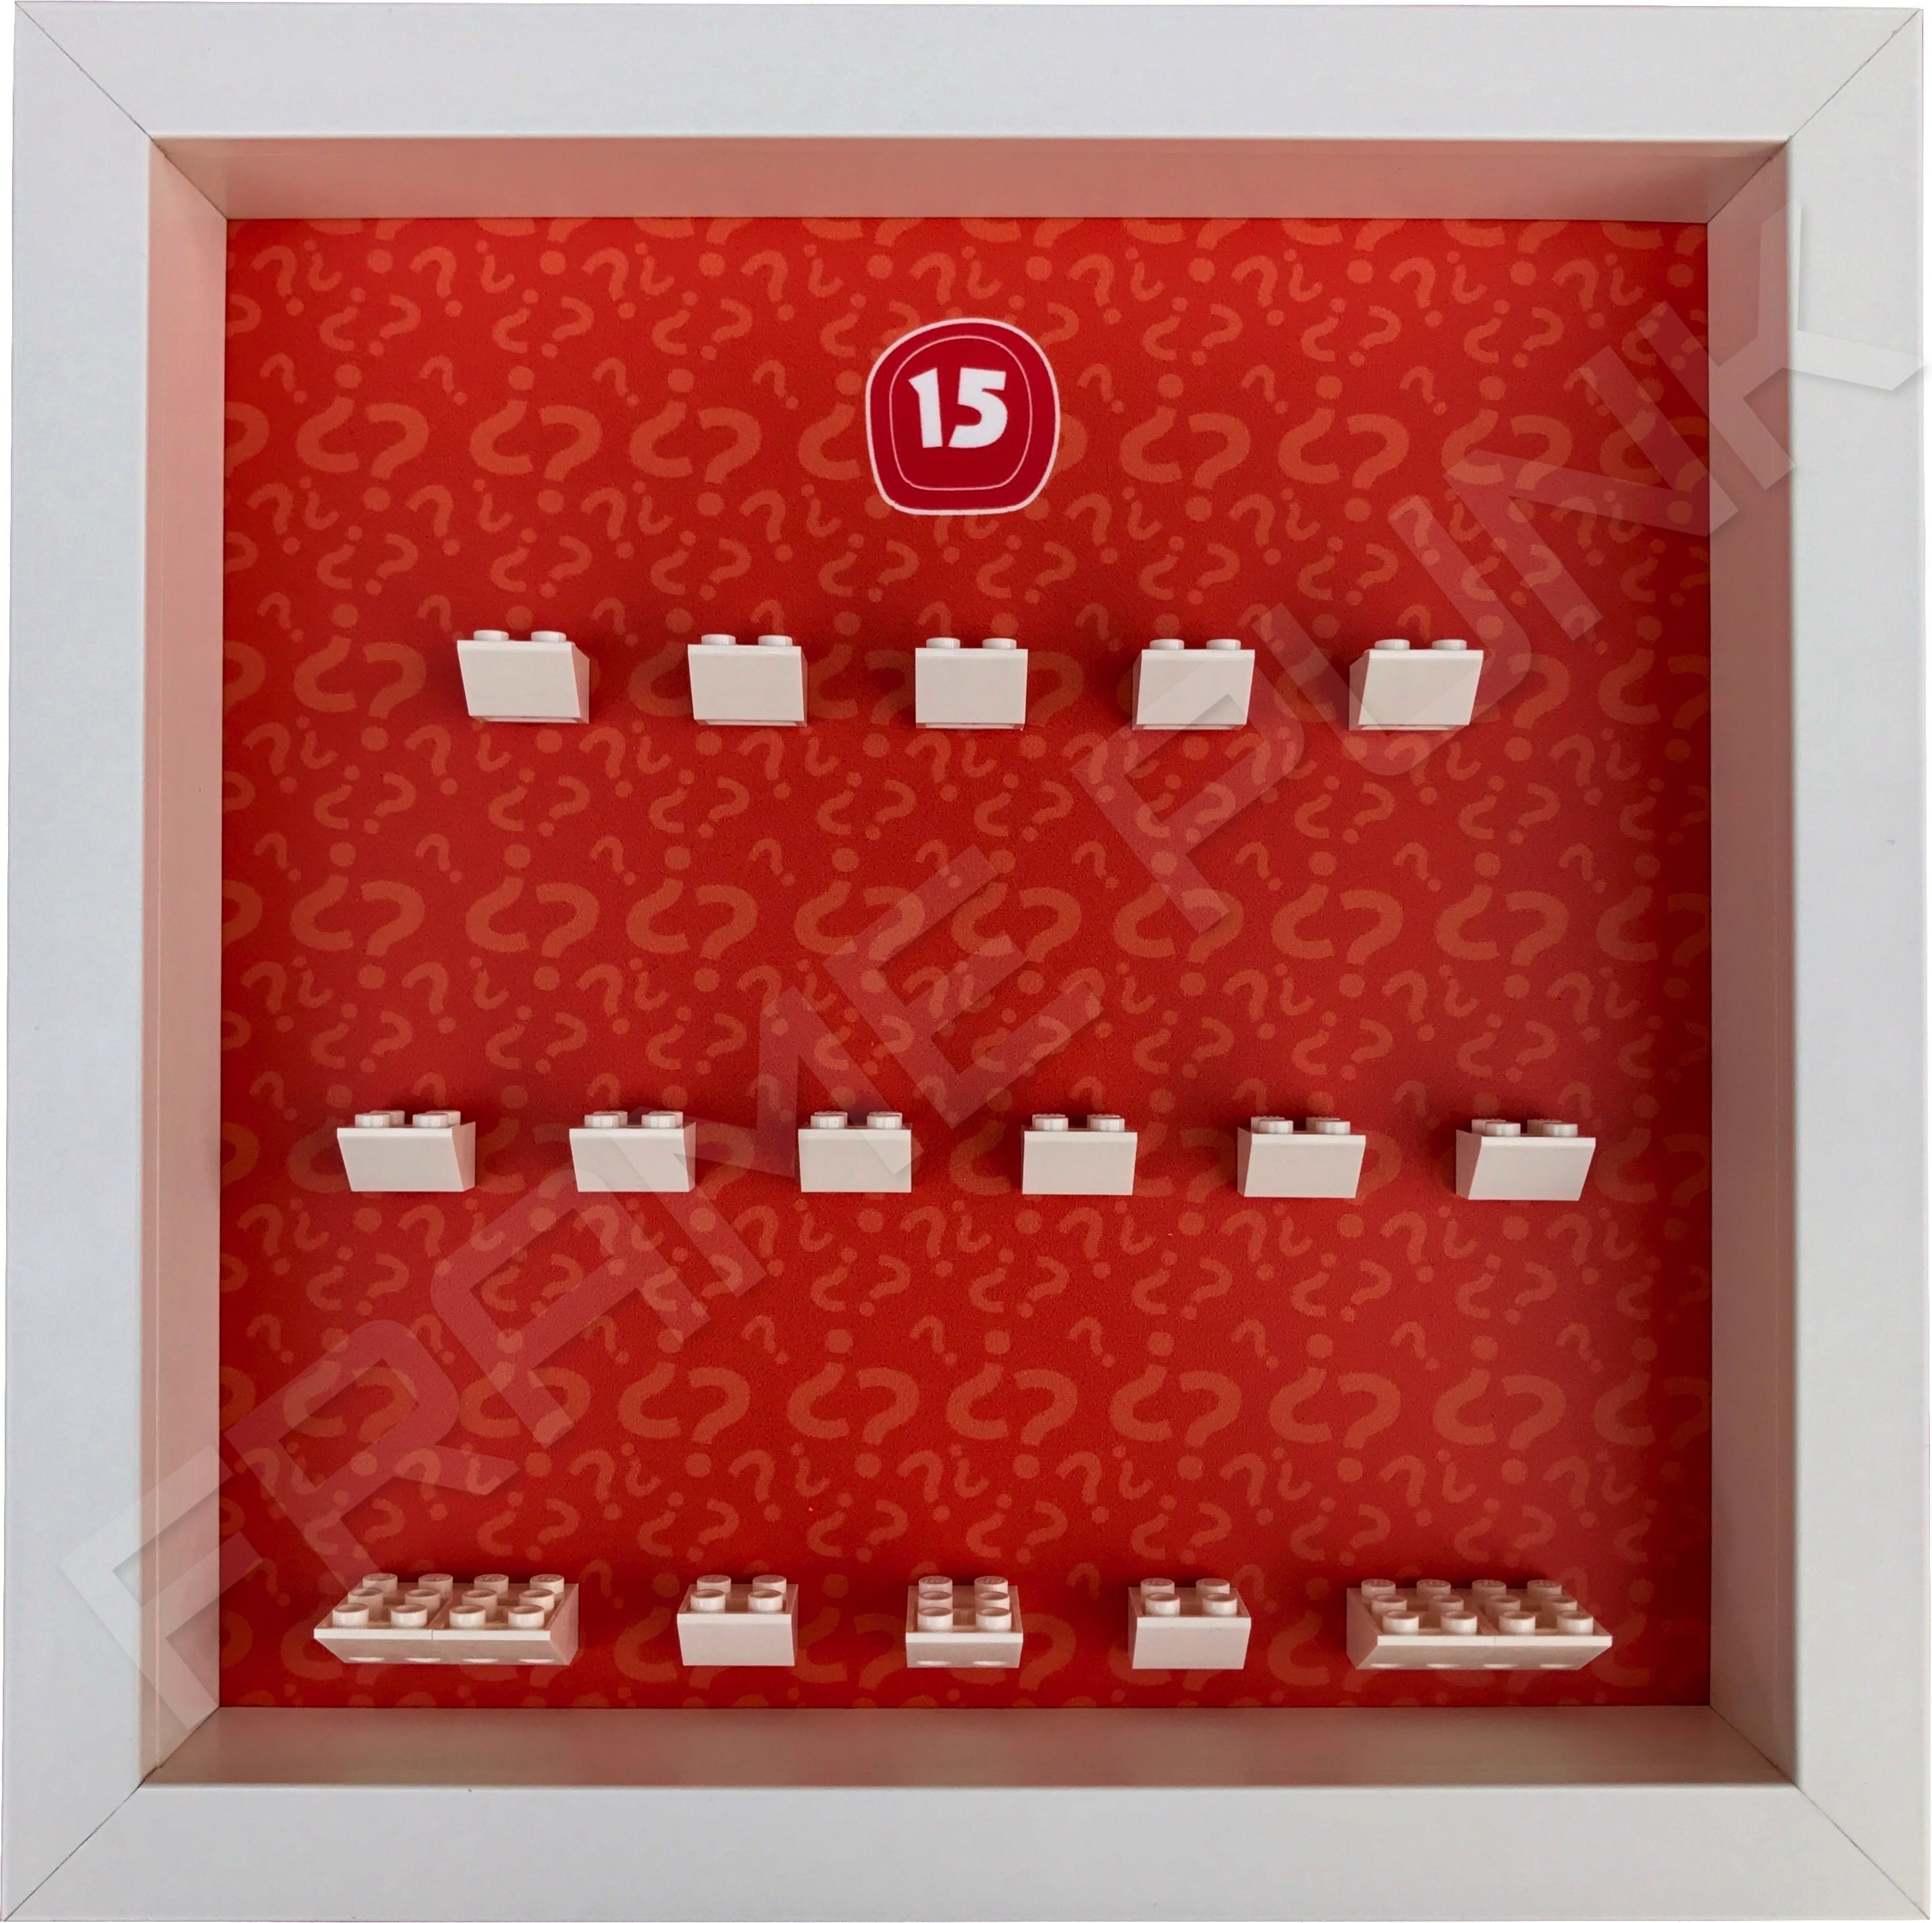 Lego minifigures series 15 display frame